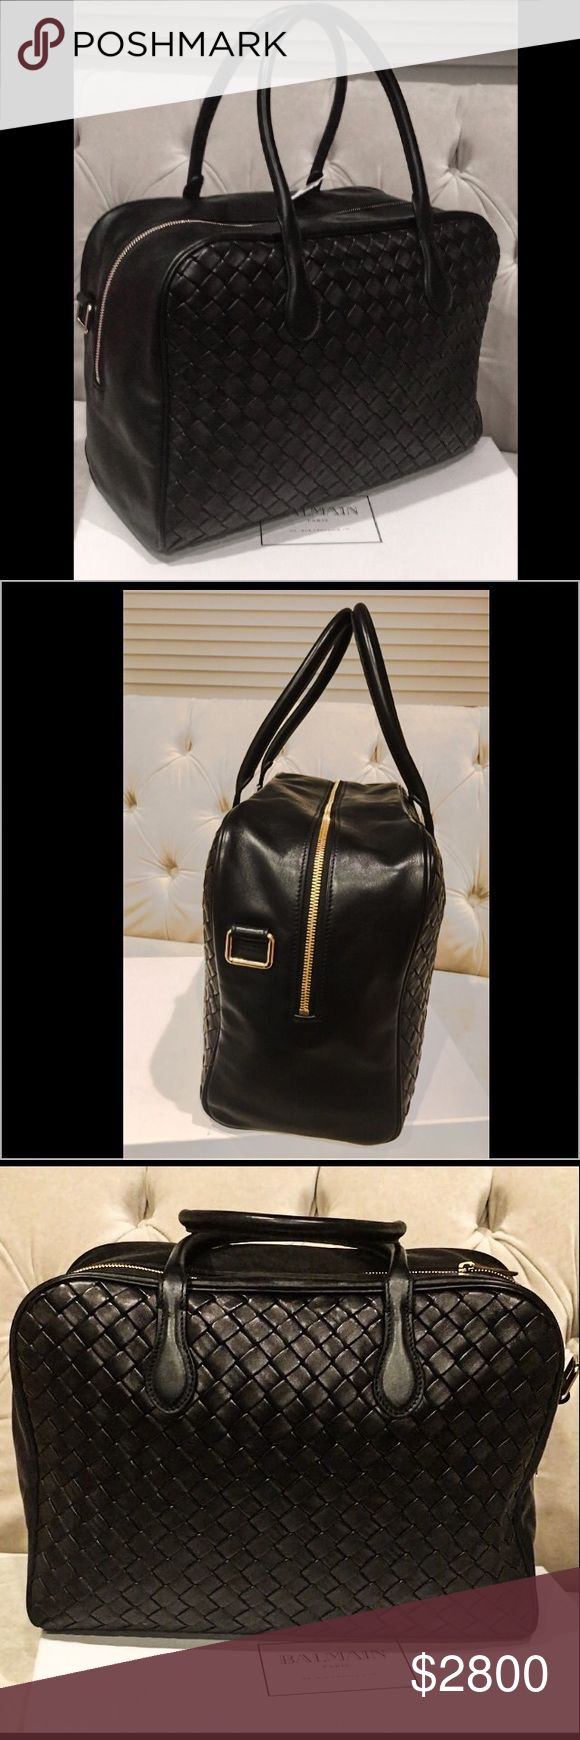 """Balmain Pierre Bag *Black leather Pierre bag  *Zip fastening with double puller in gold tone brass  *Gold tone studs at the bag's bottom  *Two handles, an adjustable shoulder strap  *Zipped pocket + two patched pockets inside  *Adjustable striped shoulder bag.                    SZ: Hight 9"""".   Length 14"""". Depth 6"""" Bags"""